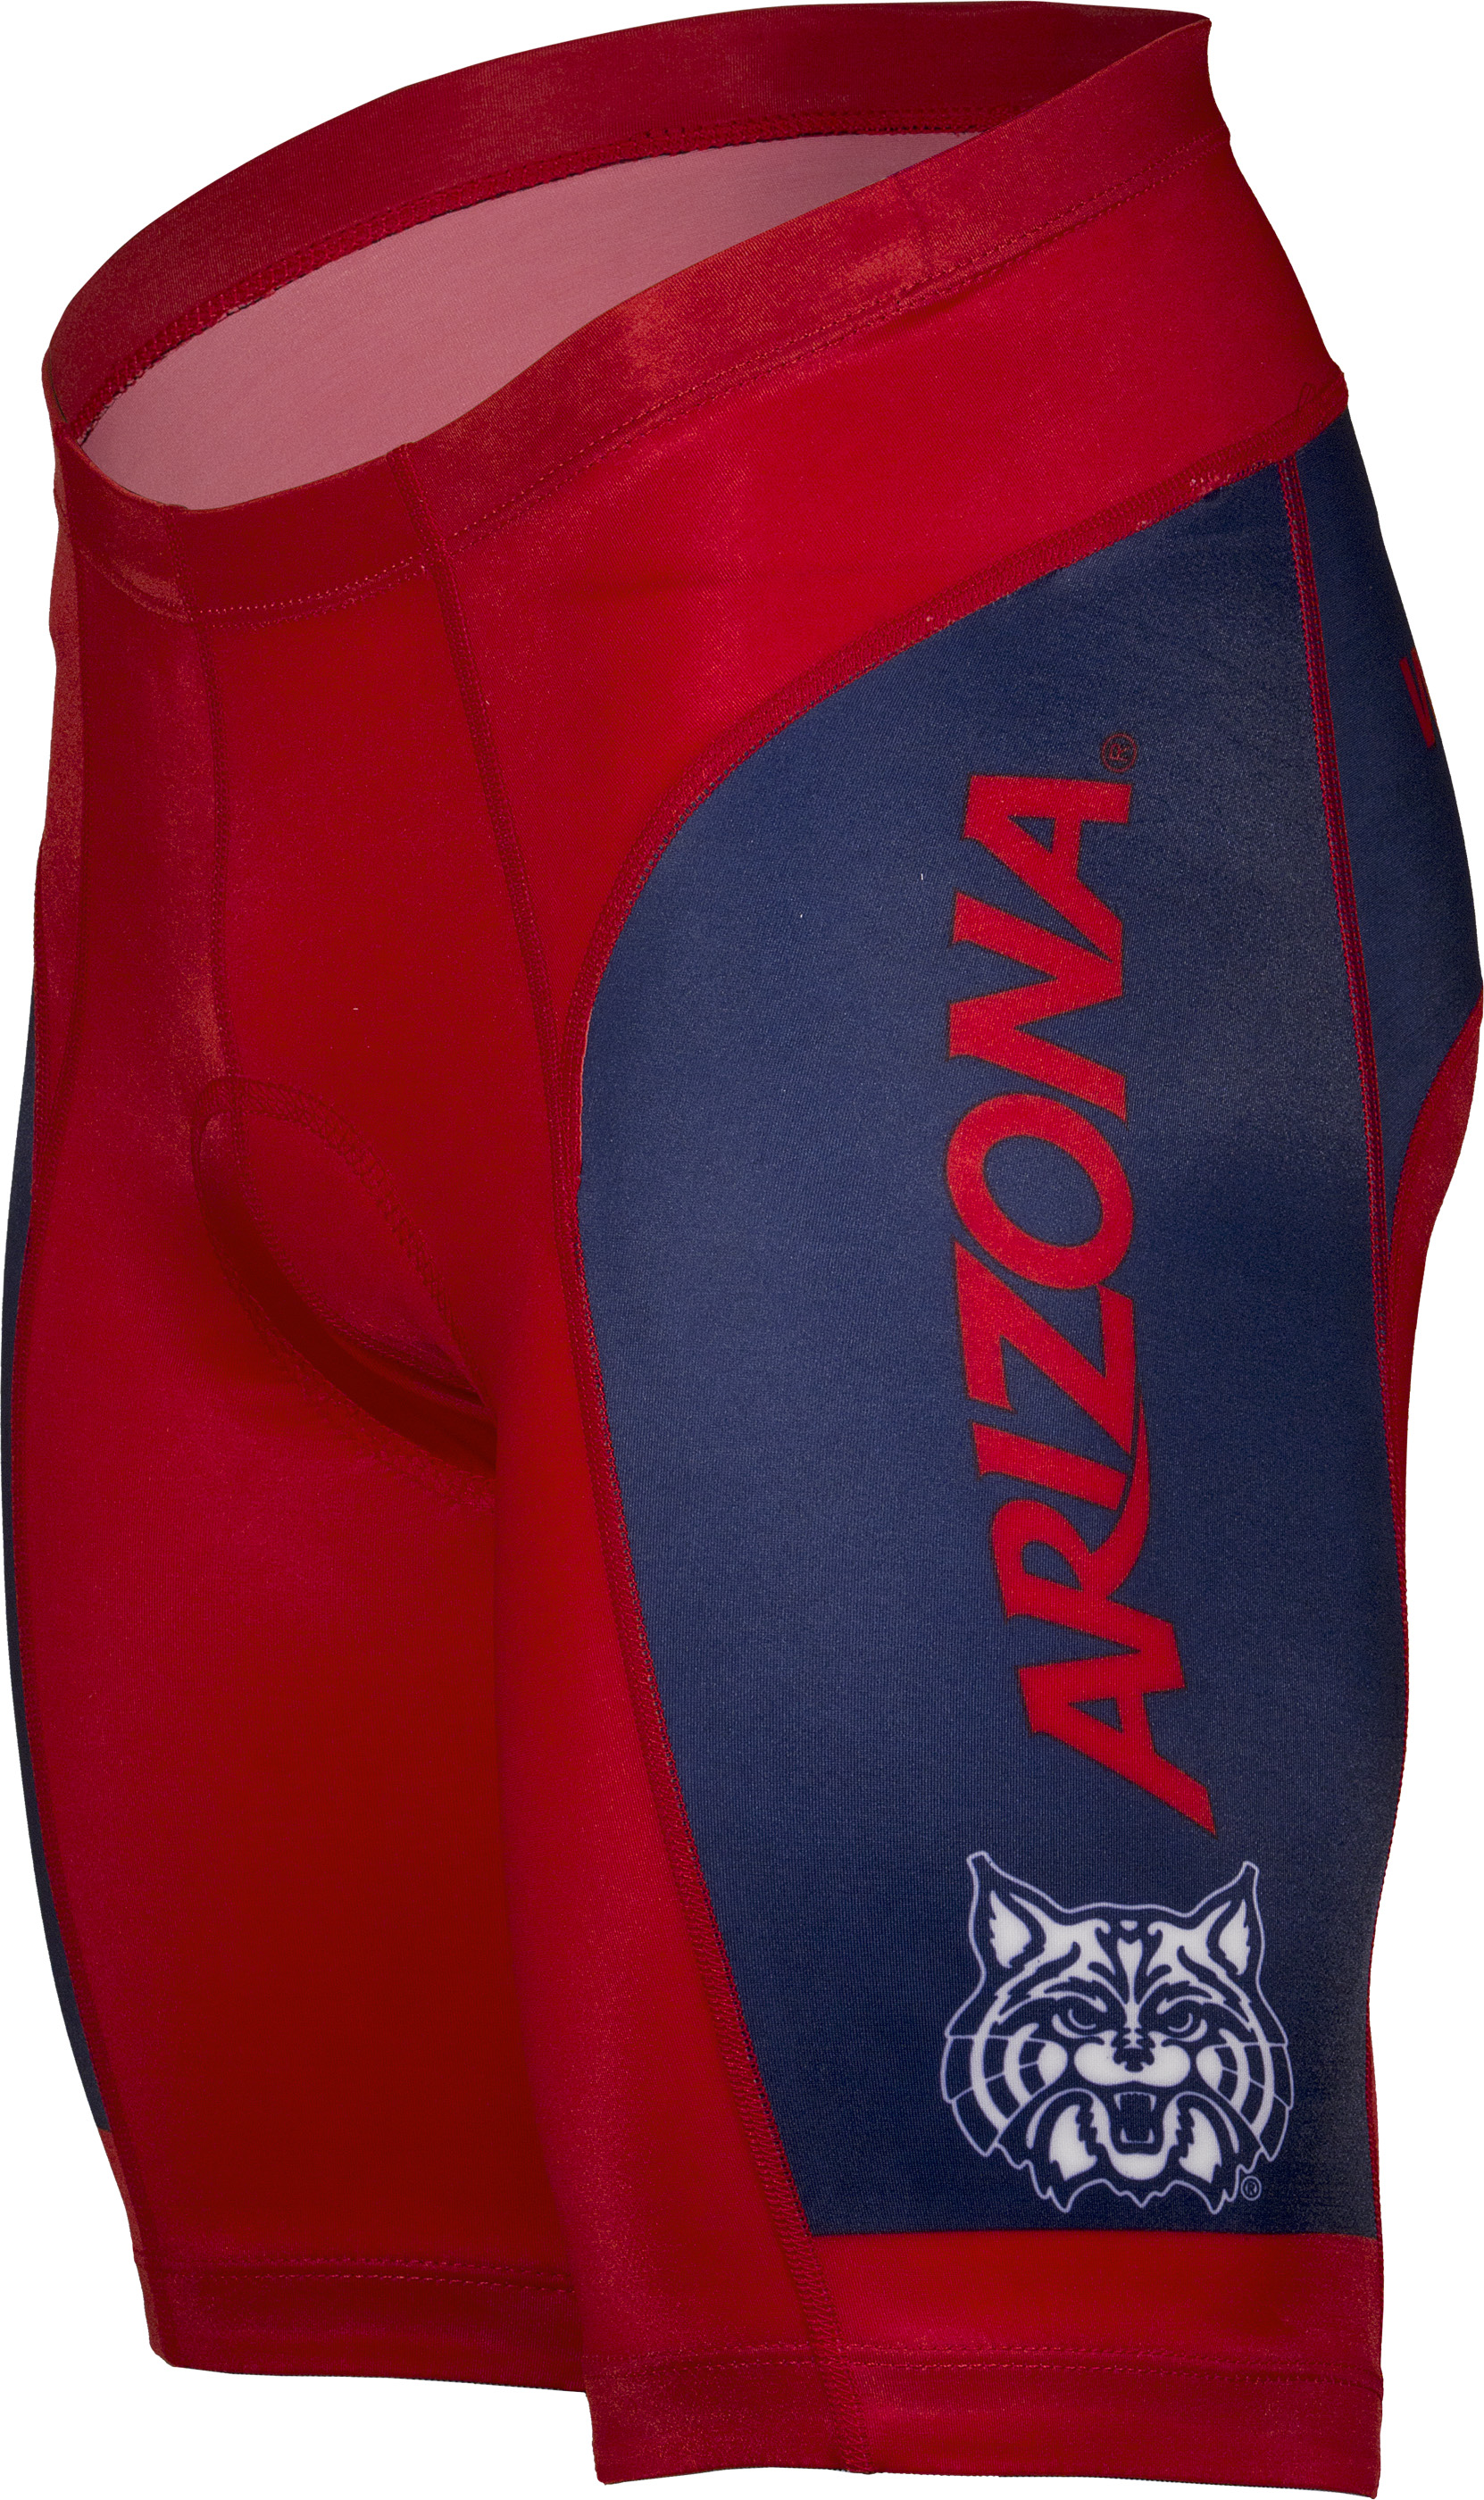 University of Arizona Wildcats Cycling Shorts